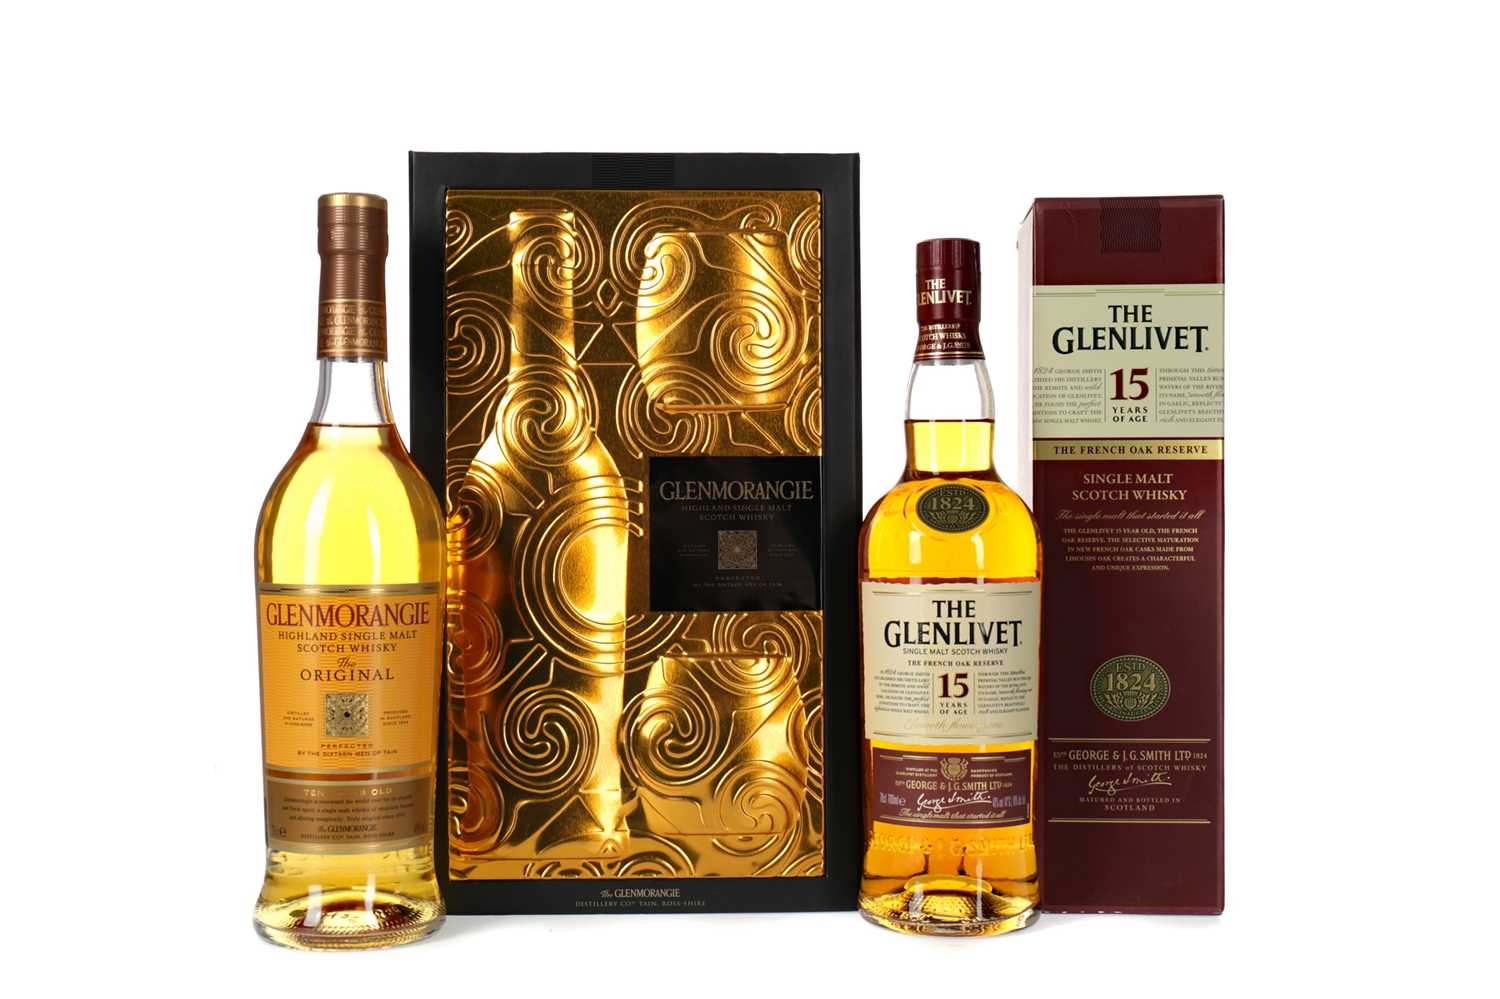 Lot 90 - GLENMORANGIE 10 YEARS OLD GLASS PACK AND GLENLIVET FRENCH OAK RESERVE 15 YEARS OLD